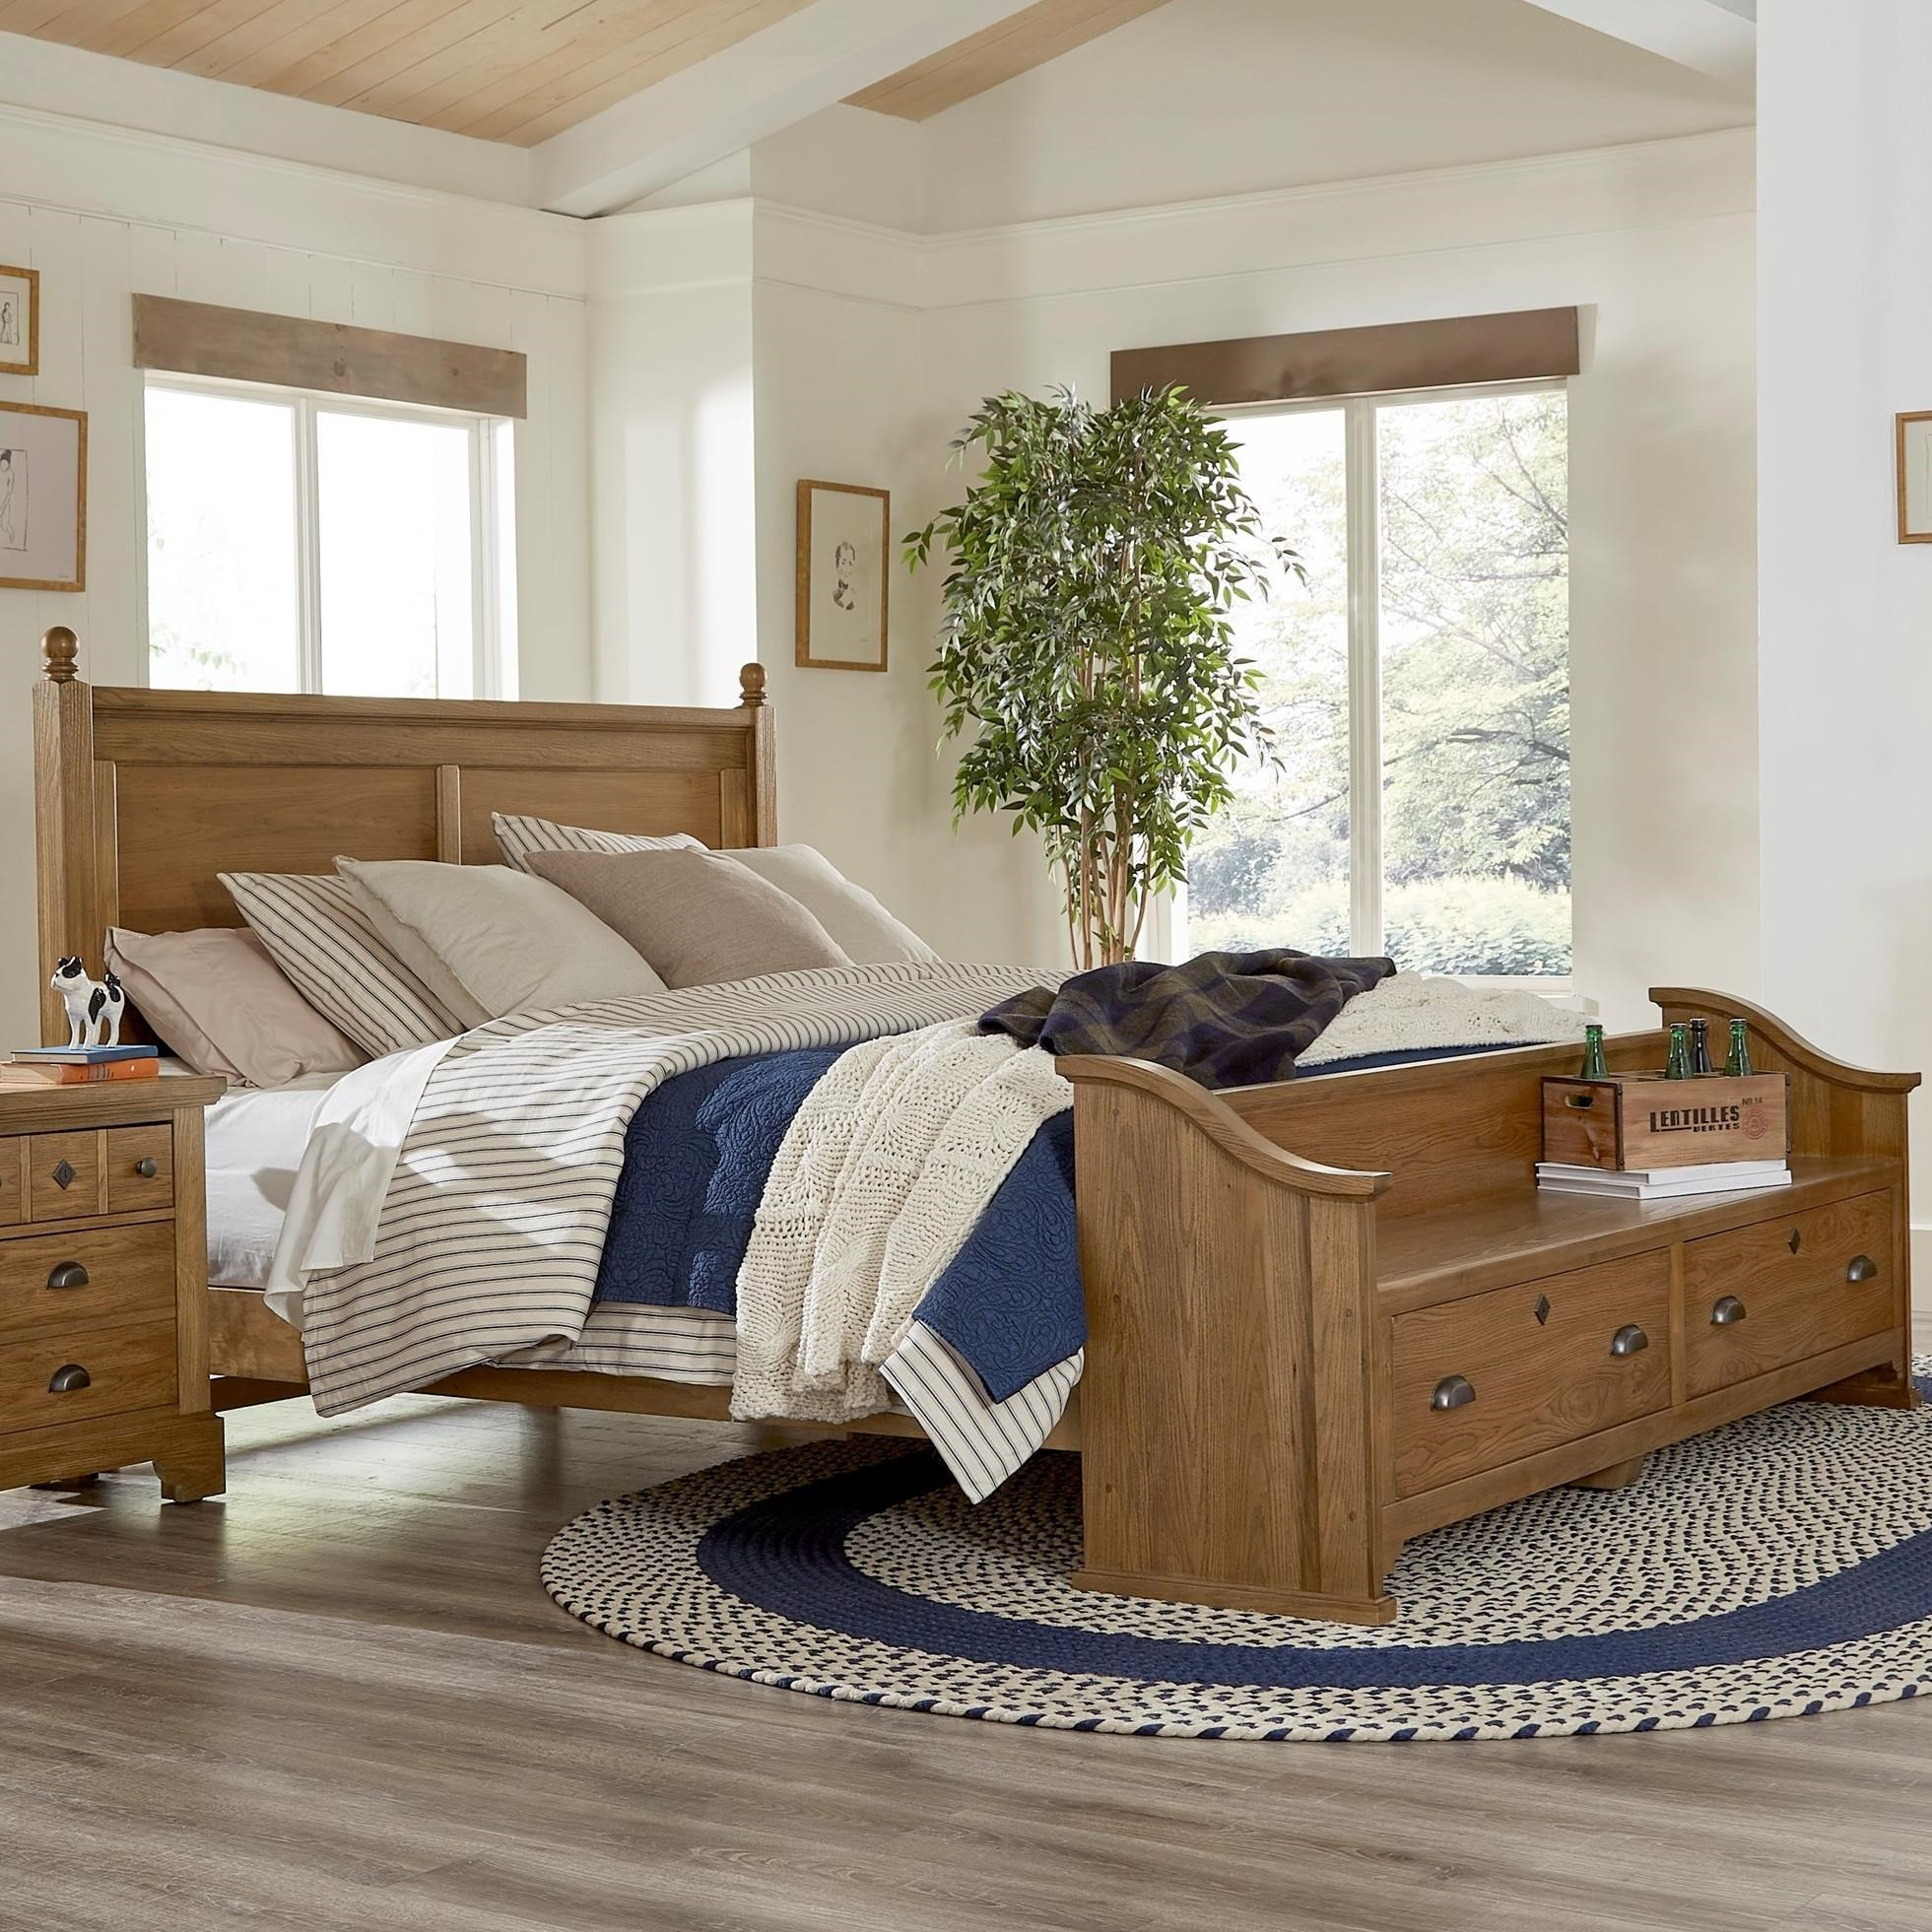 Picture of: Laurel Mercantile Co Lmco Home Relaxed Vintage Queen Poster Bed With Footboard Storage Bench Wayside Furniture Poster Beds